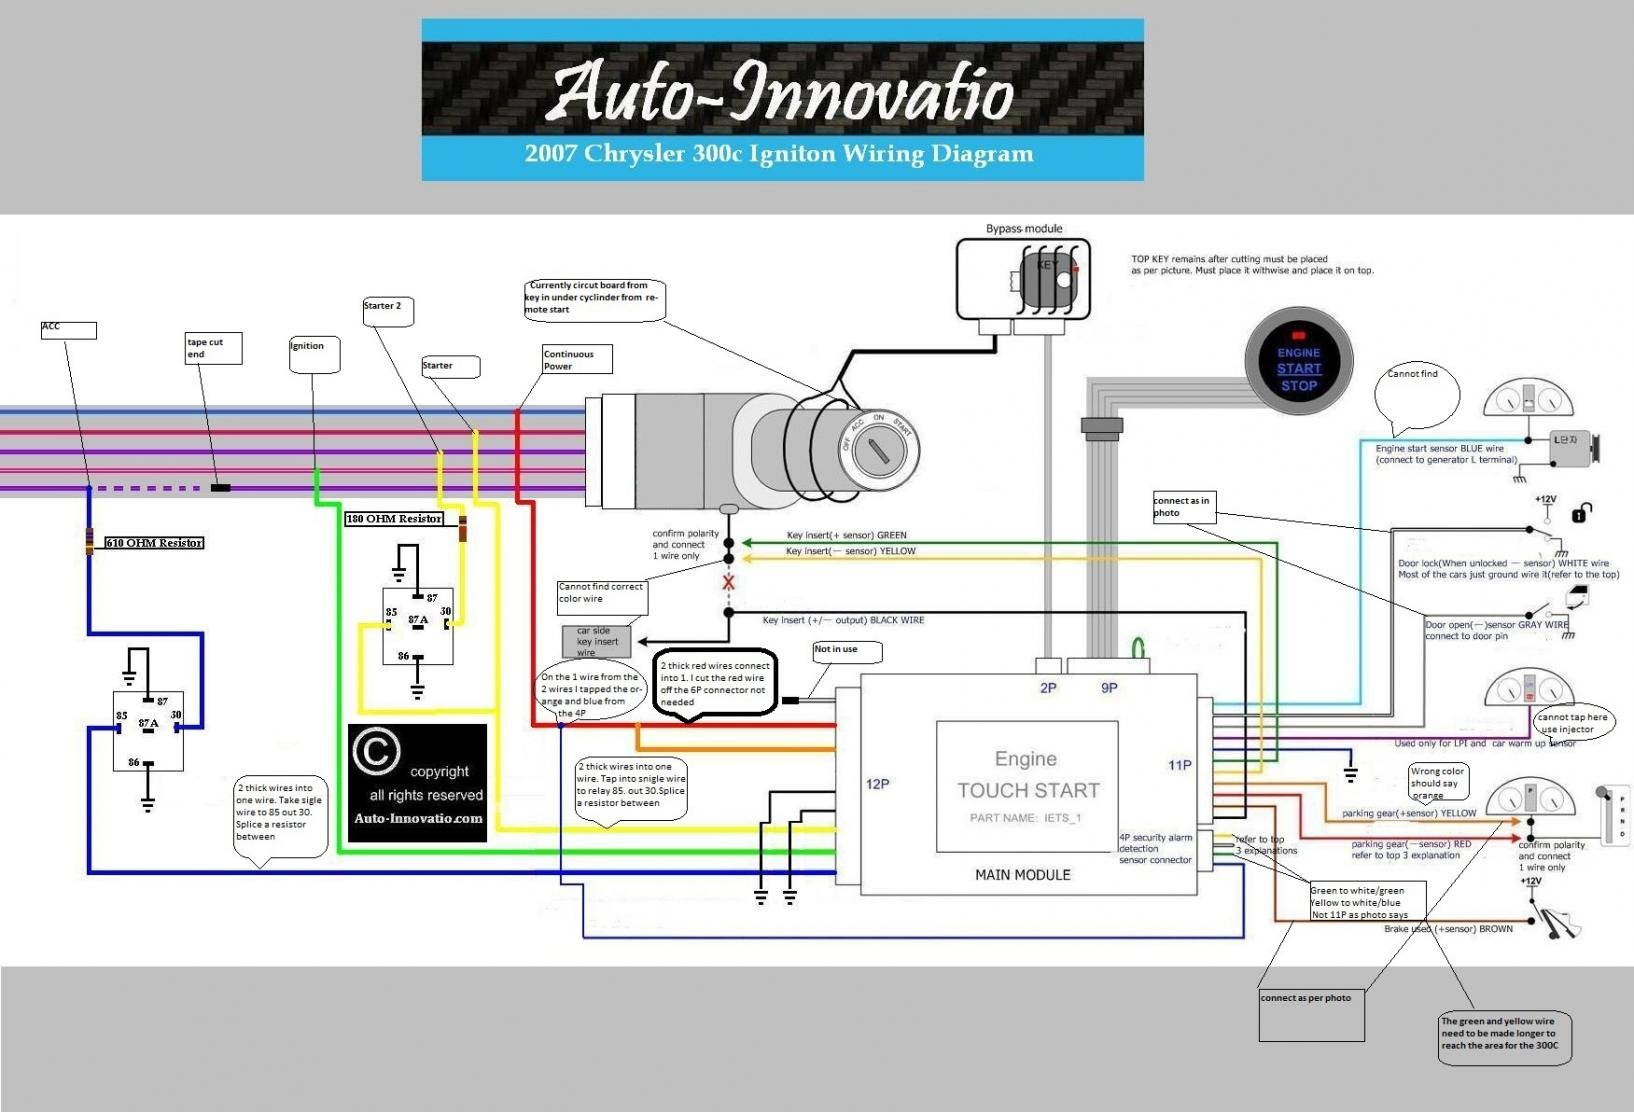 Diagram Chrysler 300 Touring Radio Wiring Diagram Full Version Hd Quality Wiring Diagram Sfastructuredsales Dn Mag Fr